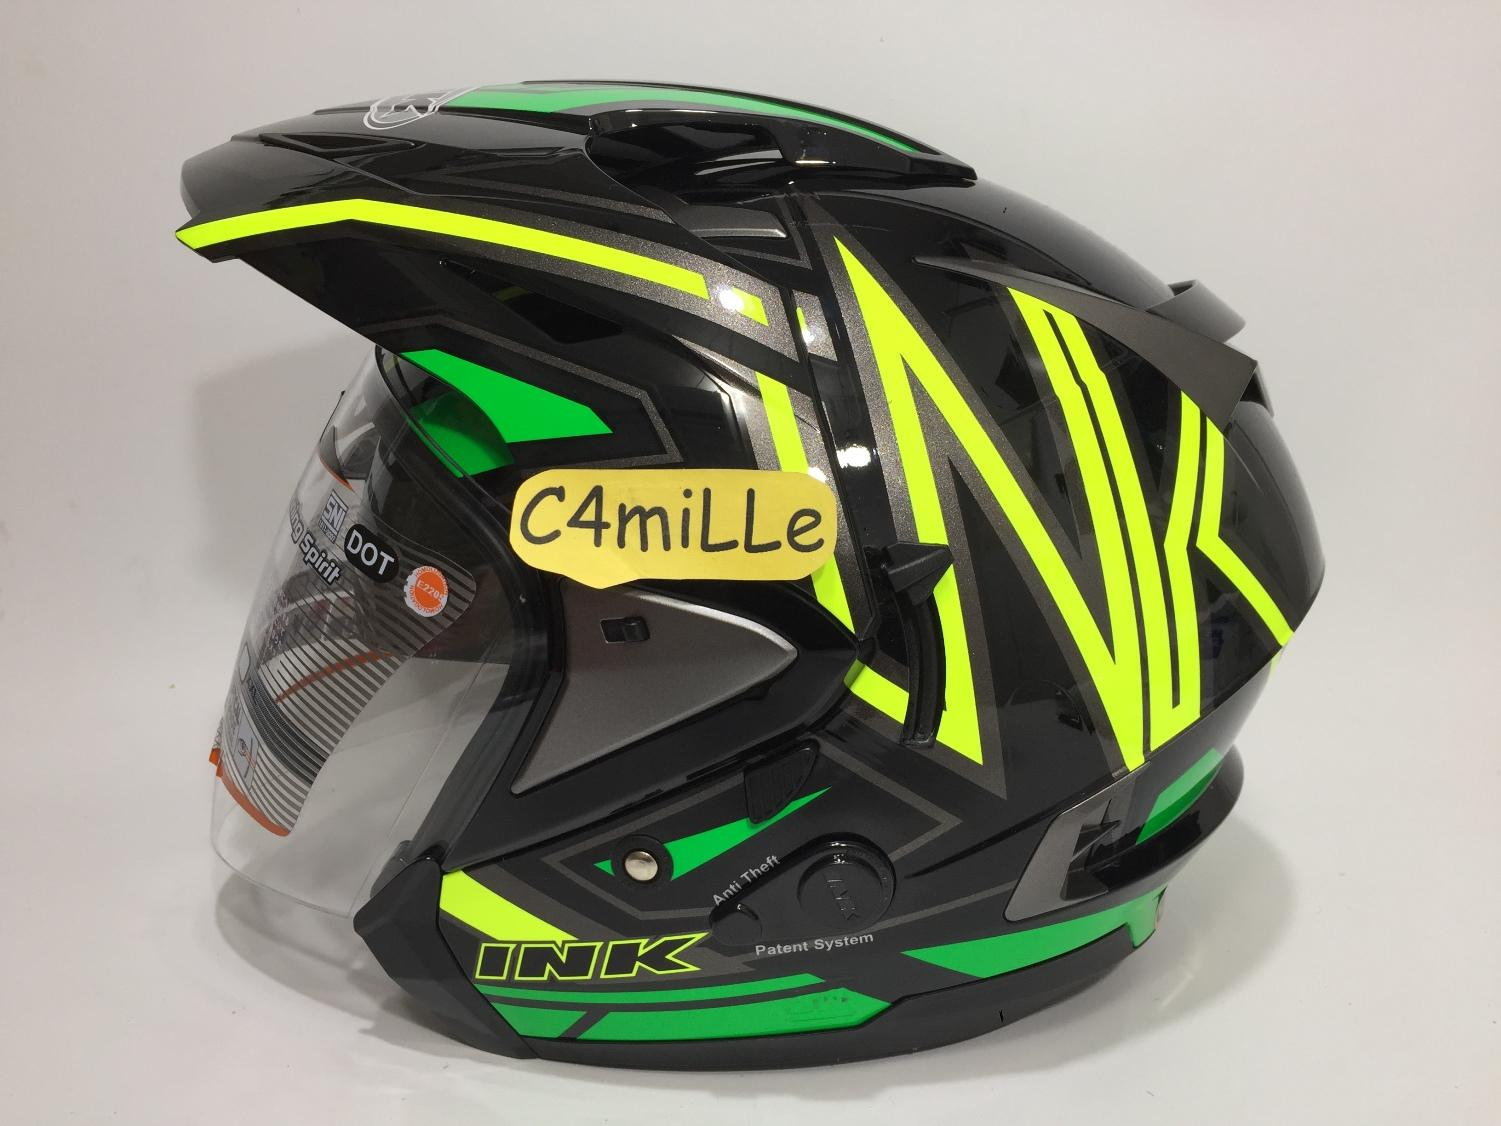 HELM INK T MAX / TMAX #1 BLACK YELLOW FLUO GREEN DOUBLE VISOR HALF FACE SIZE L